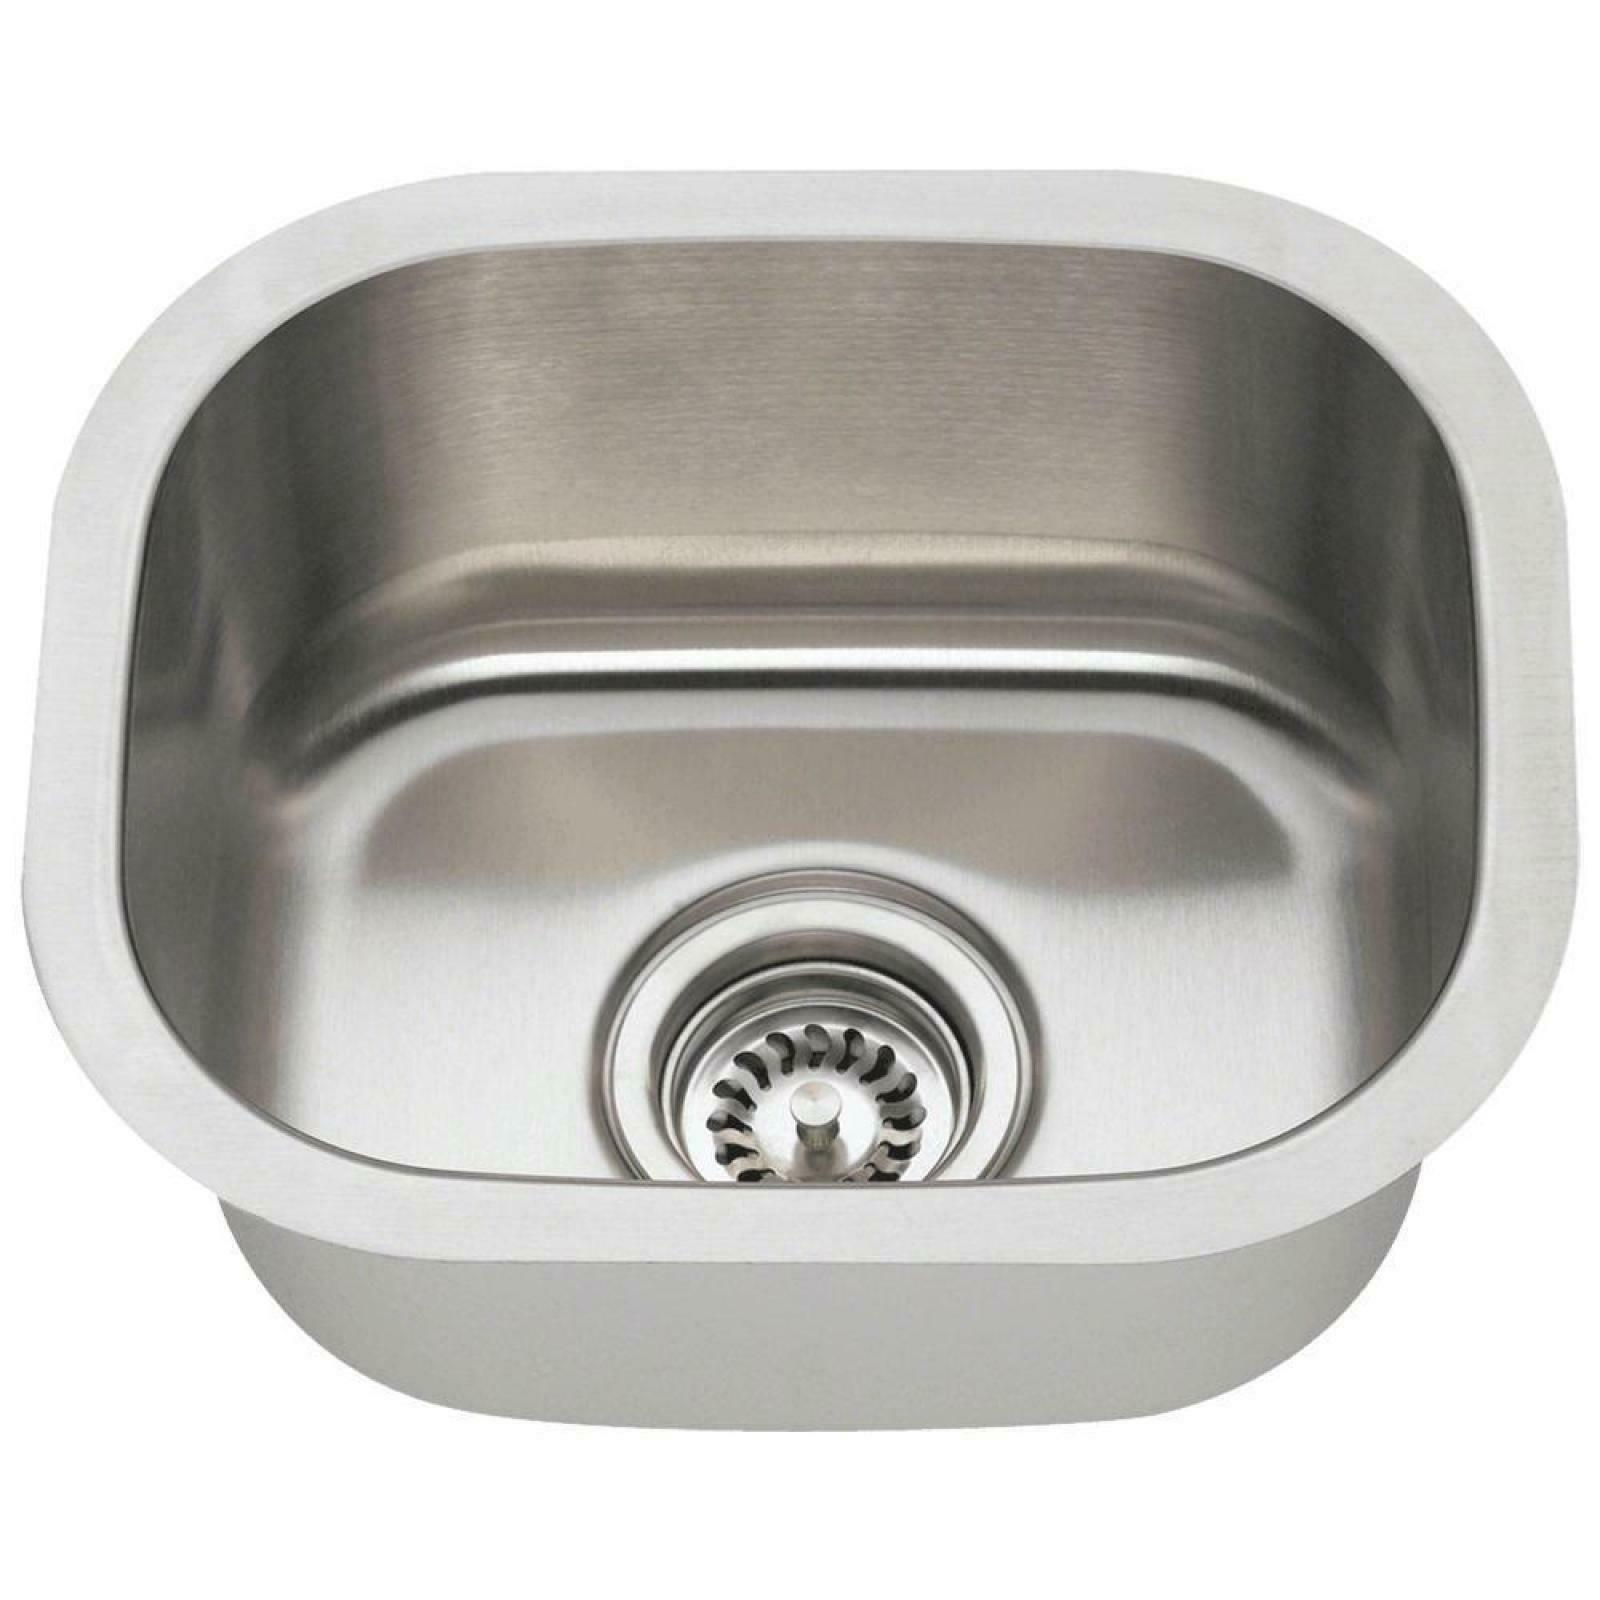 Undermount Stainless Steel inch Single Bowl Sink Heavy 18 Gauge